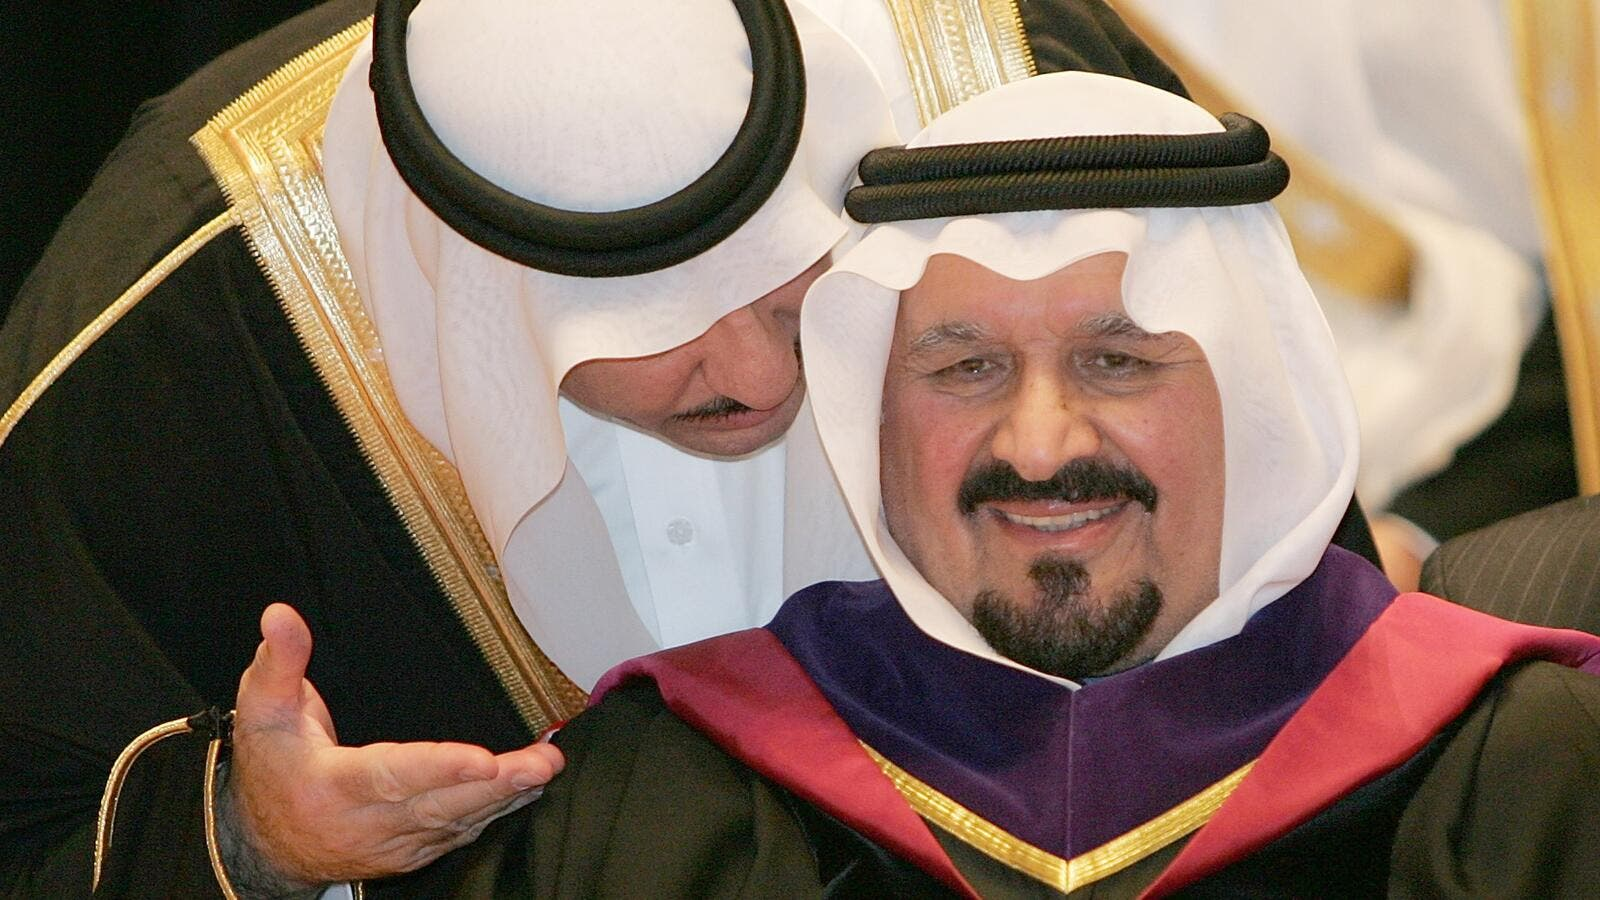 Saudis will miss Crown Prince Sultan whose death leaves a void | Al